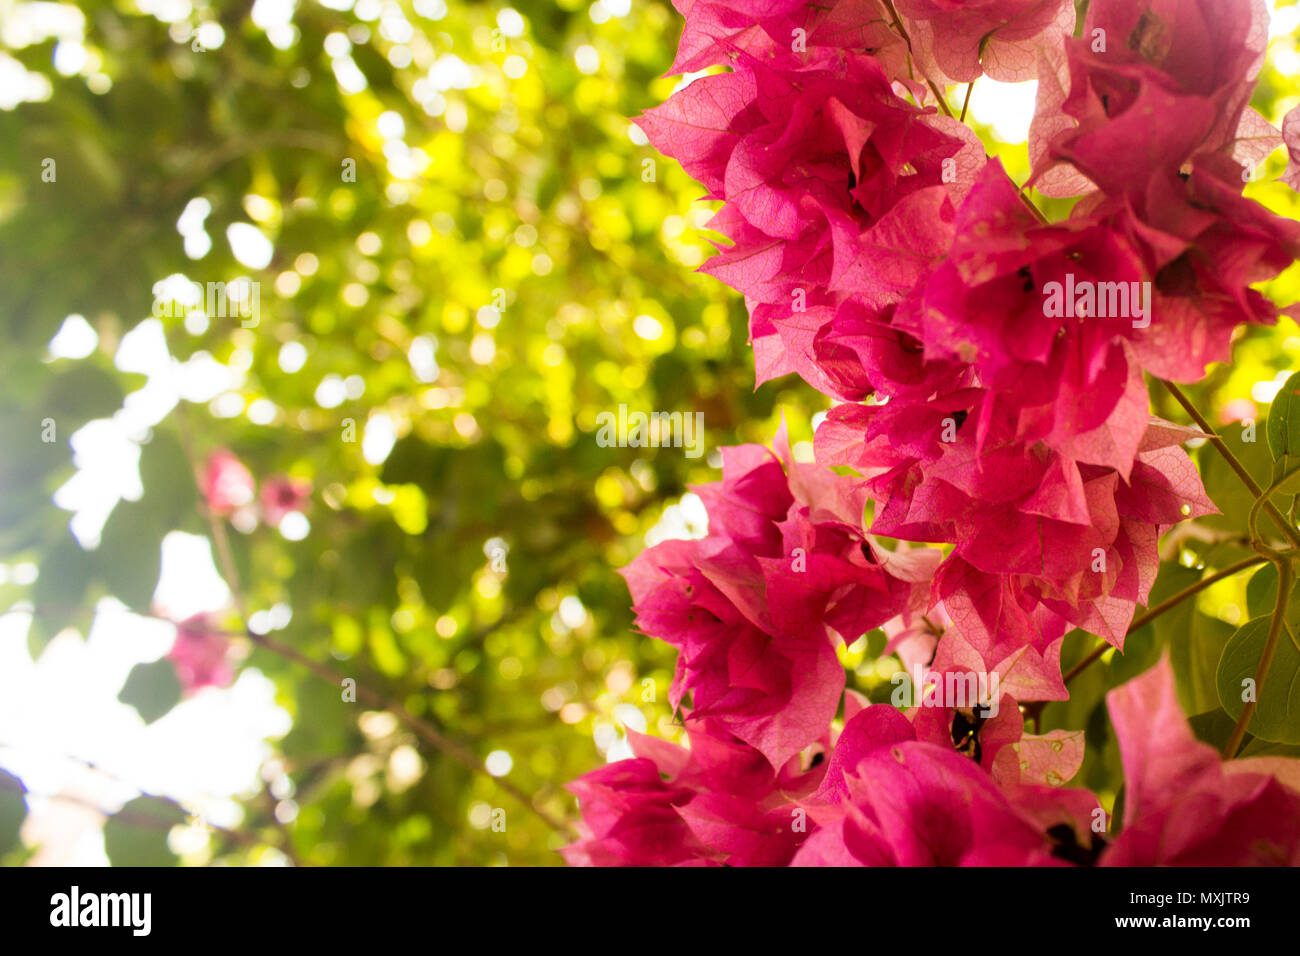 Close-up of a group of violet flowers with foliage as background. - Stock Image